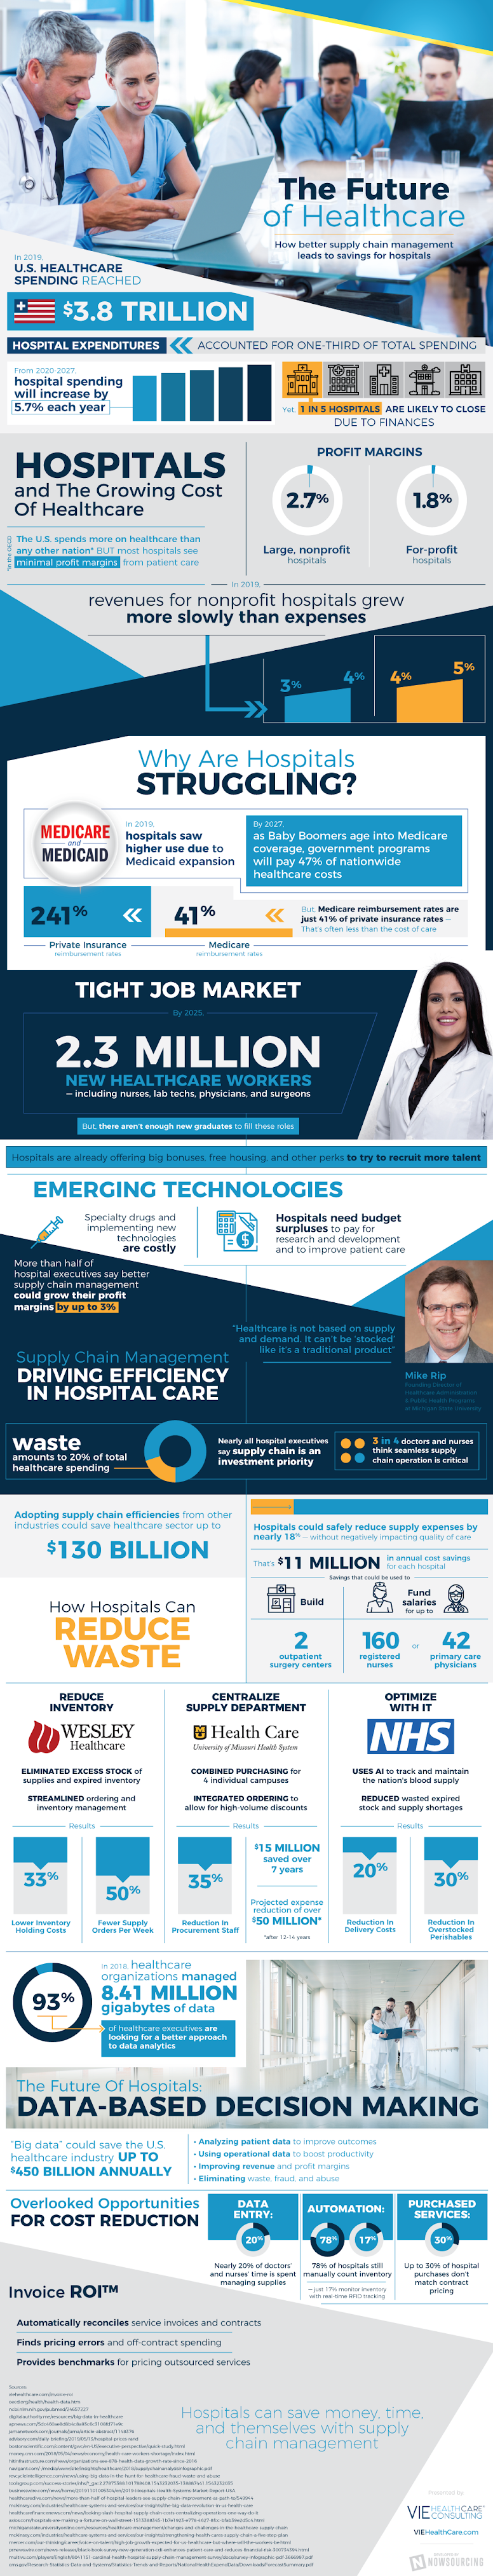 Hospital Supply Chain Management Solutions #infographic